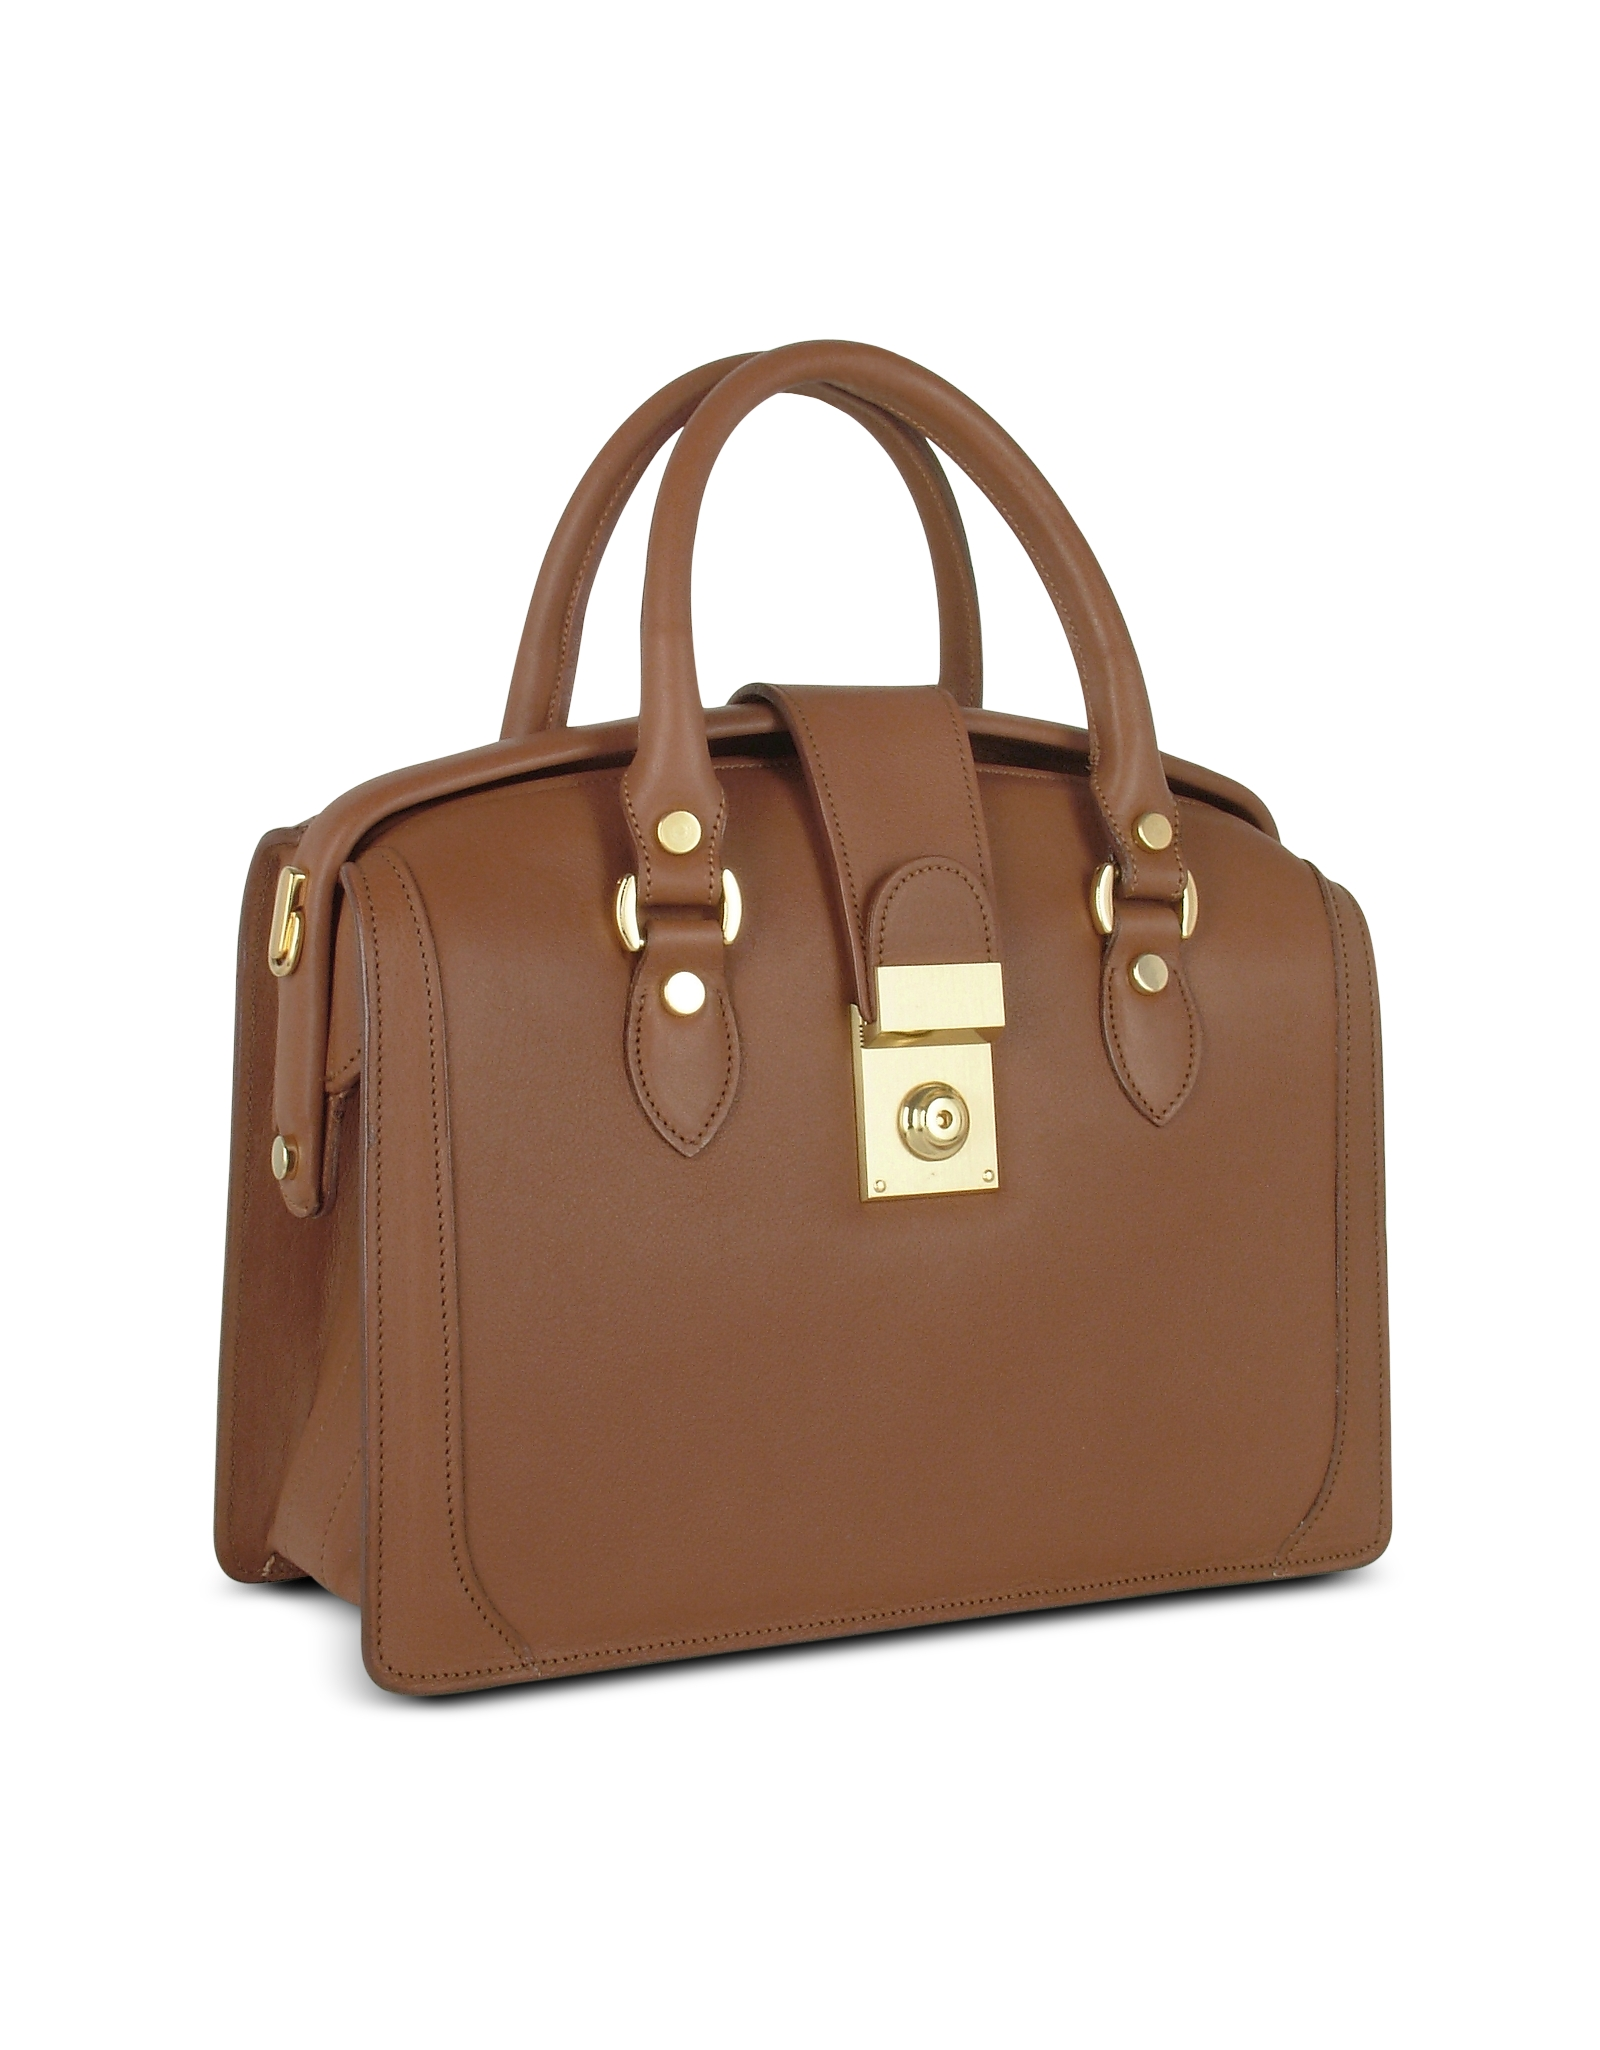 L A P Women S Brown Italian Leather Doctor Bag